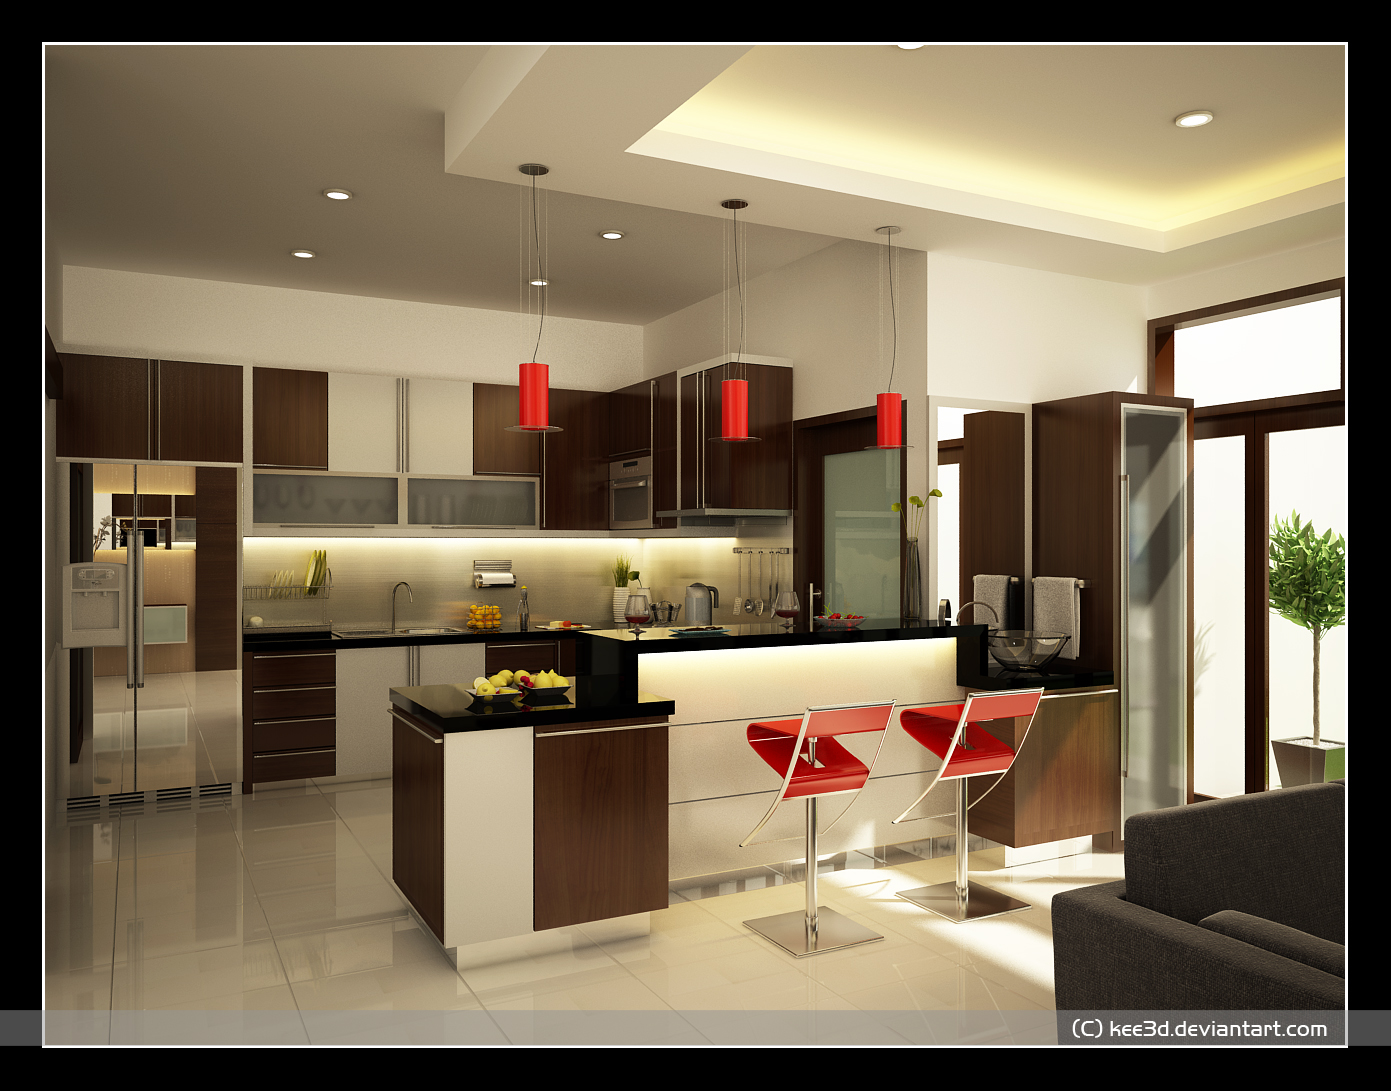 kitchen design ideas set 2 - New Home Kitchen Design Ideas